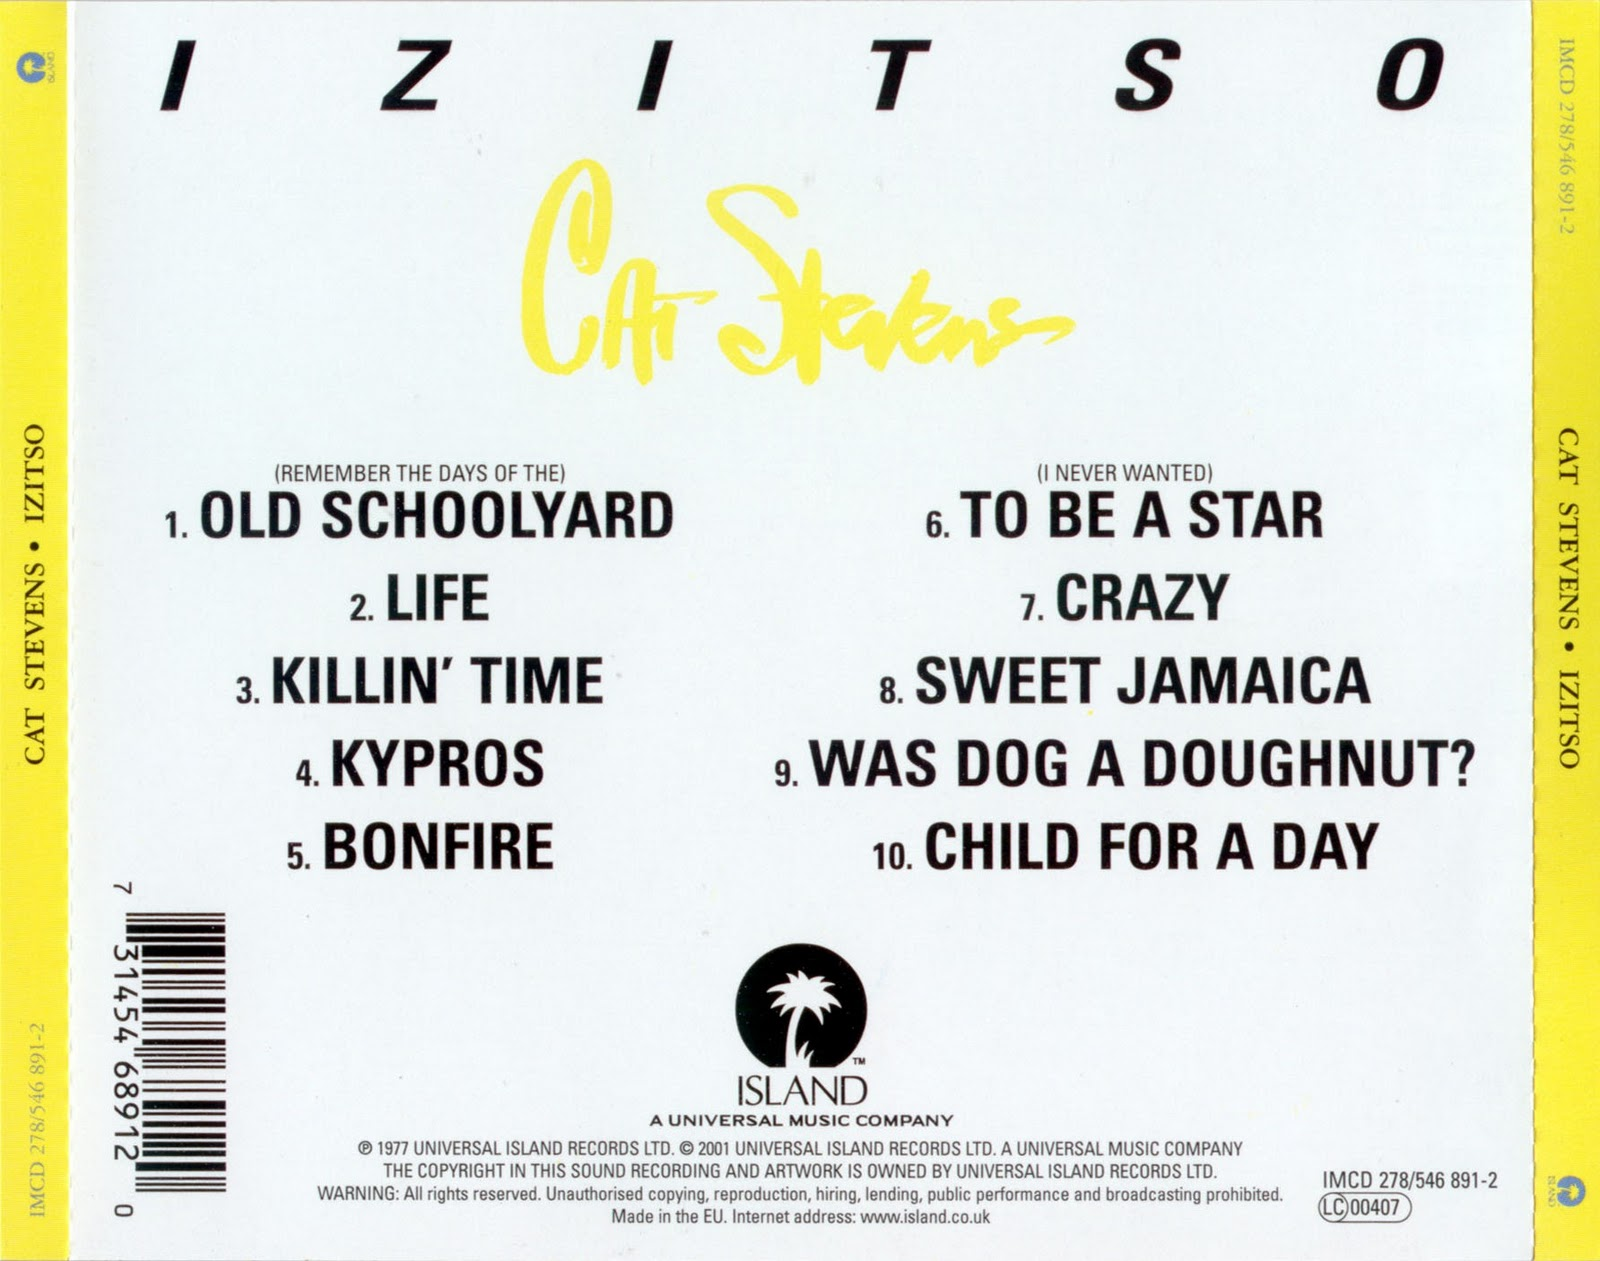 Cat stevens was dog a doughnut discogs - Siacoin price 2020